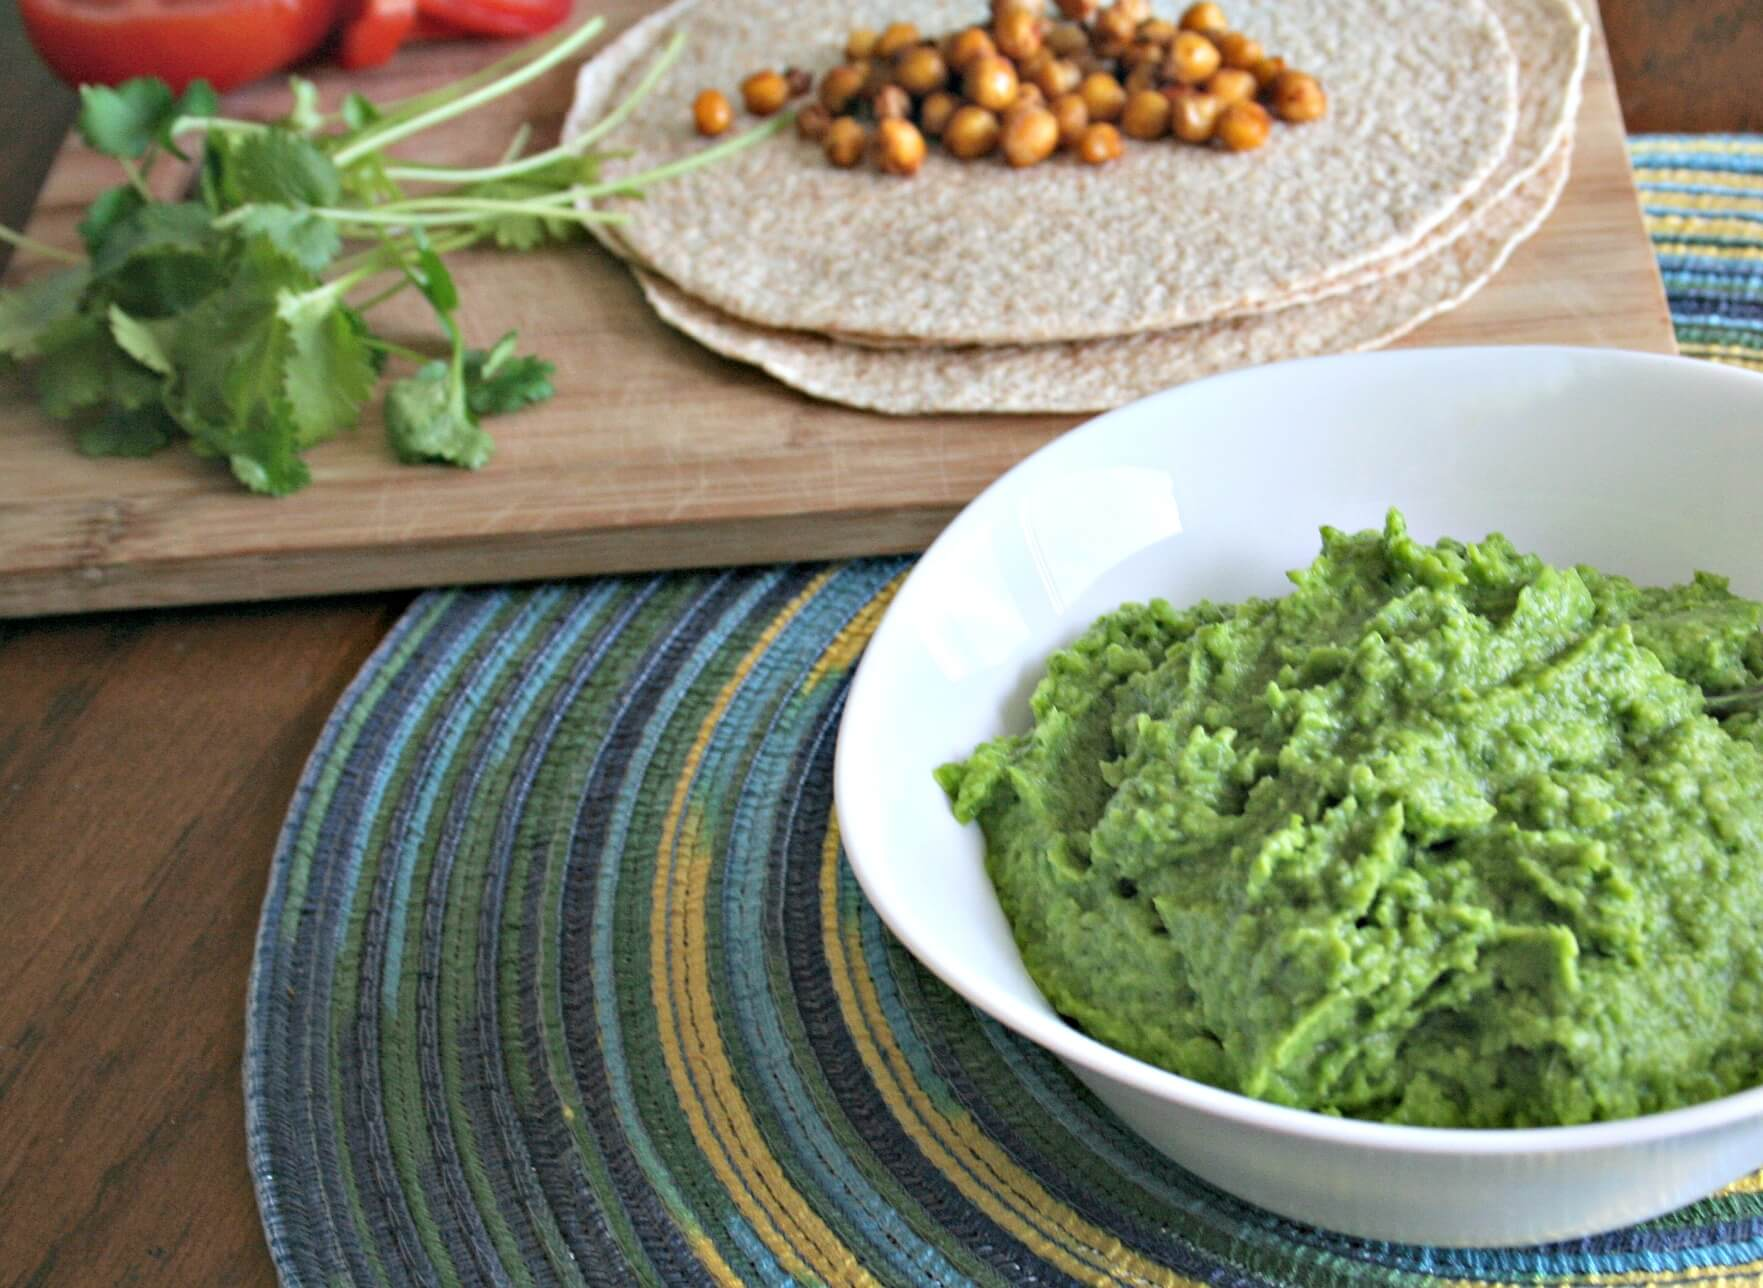 lighter guacamole made with avocado and green peas